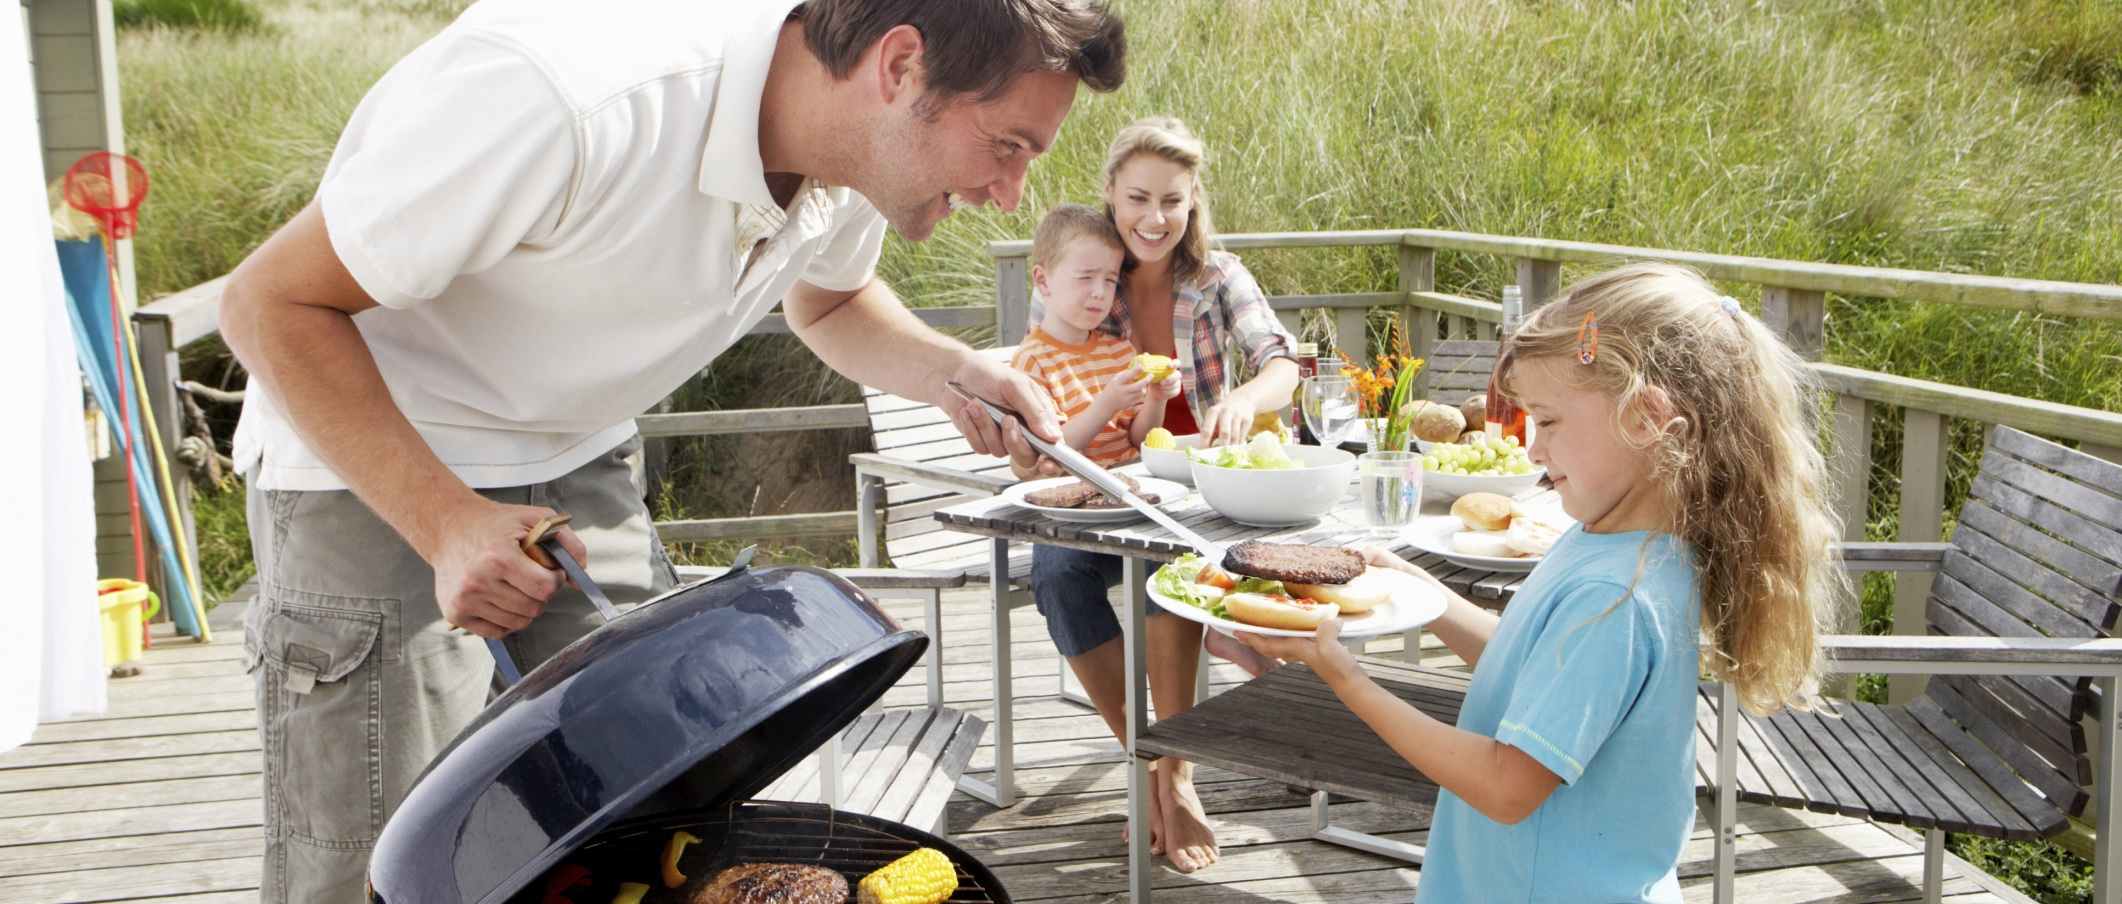 Best BBQ Gift Ideas for Men - Ratings and Reviews